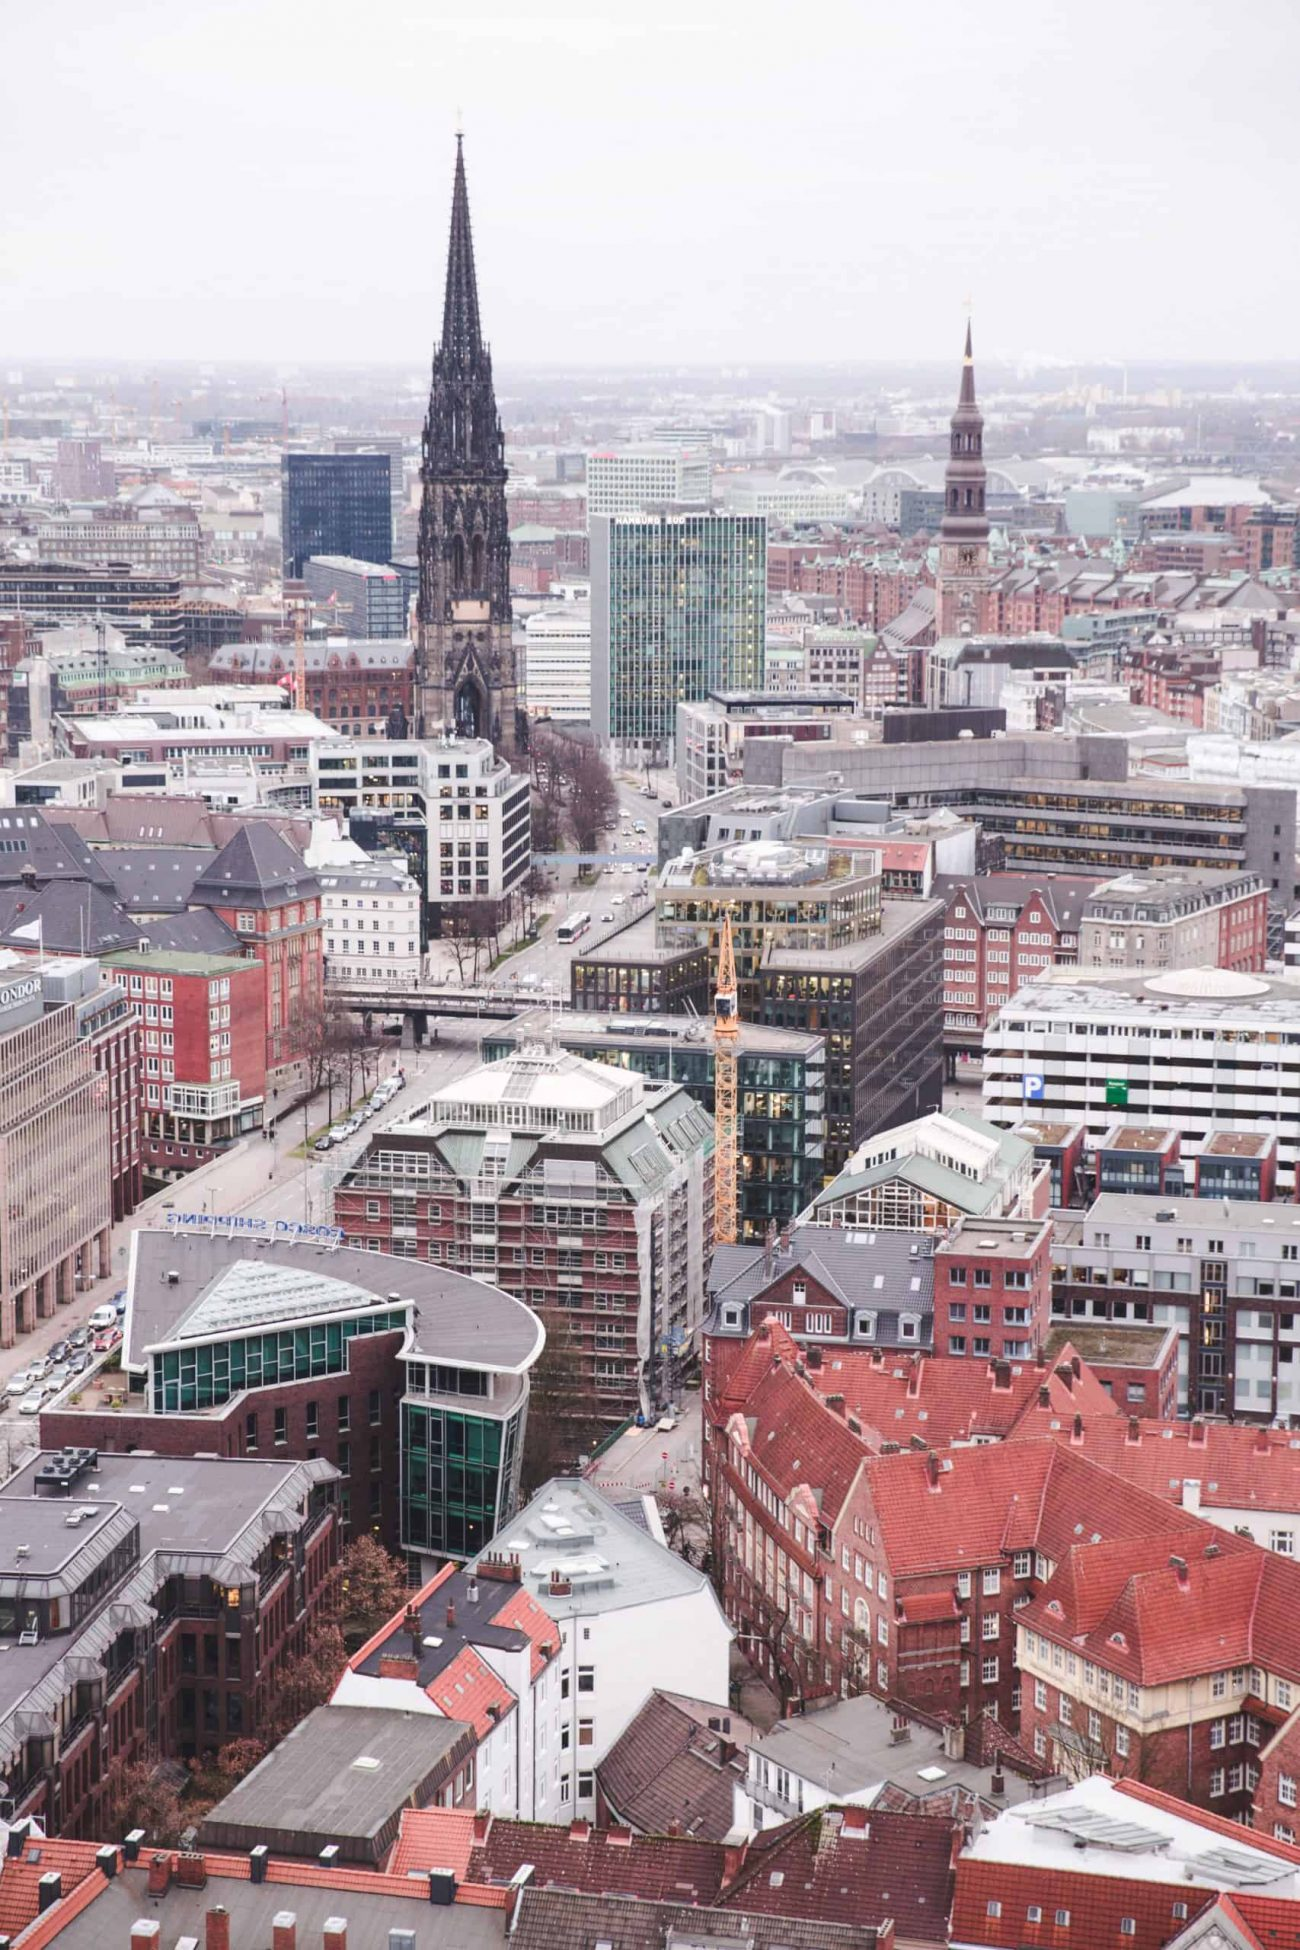 Hamburg, Germany from the tower at St. Michael's Church, or Michel. Hamburg is an excellent destination to travel to in 2020!